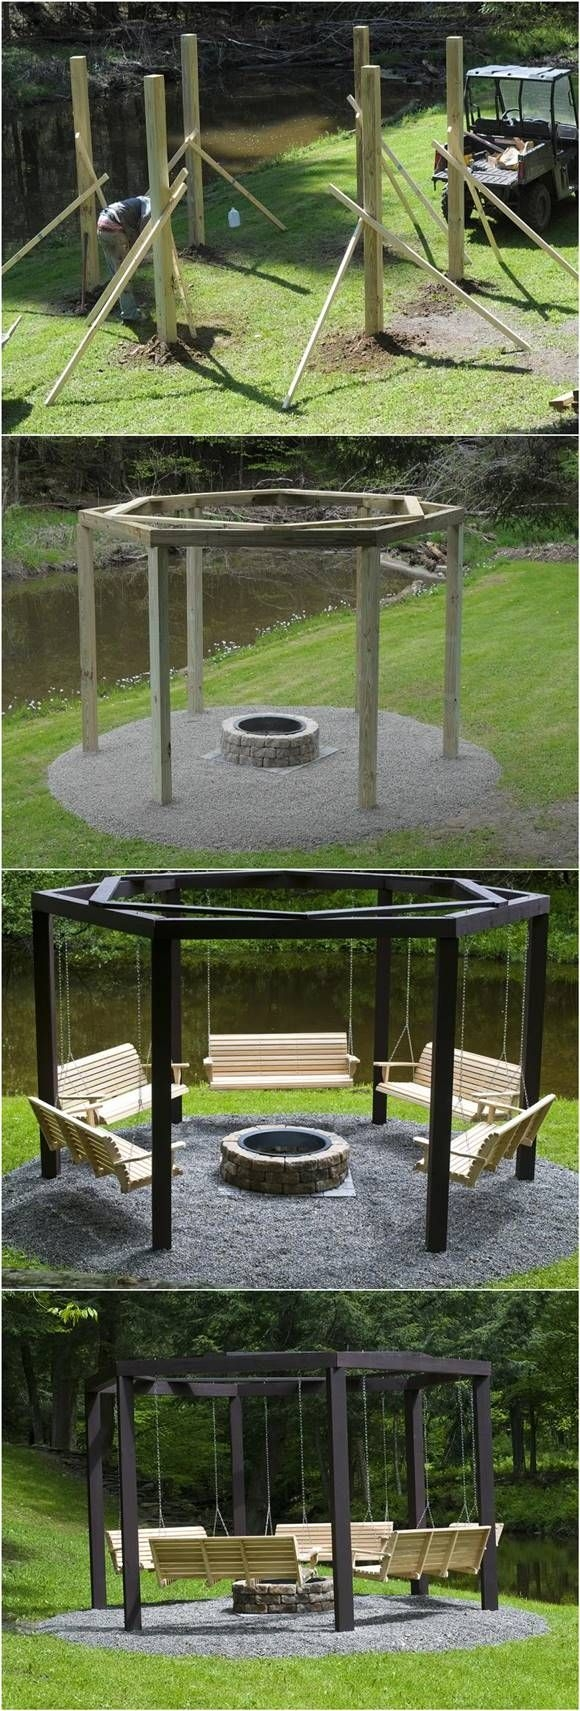 Firepit with Swing Chairs